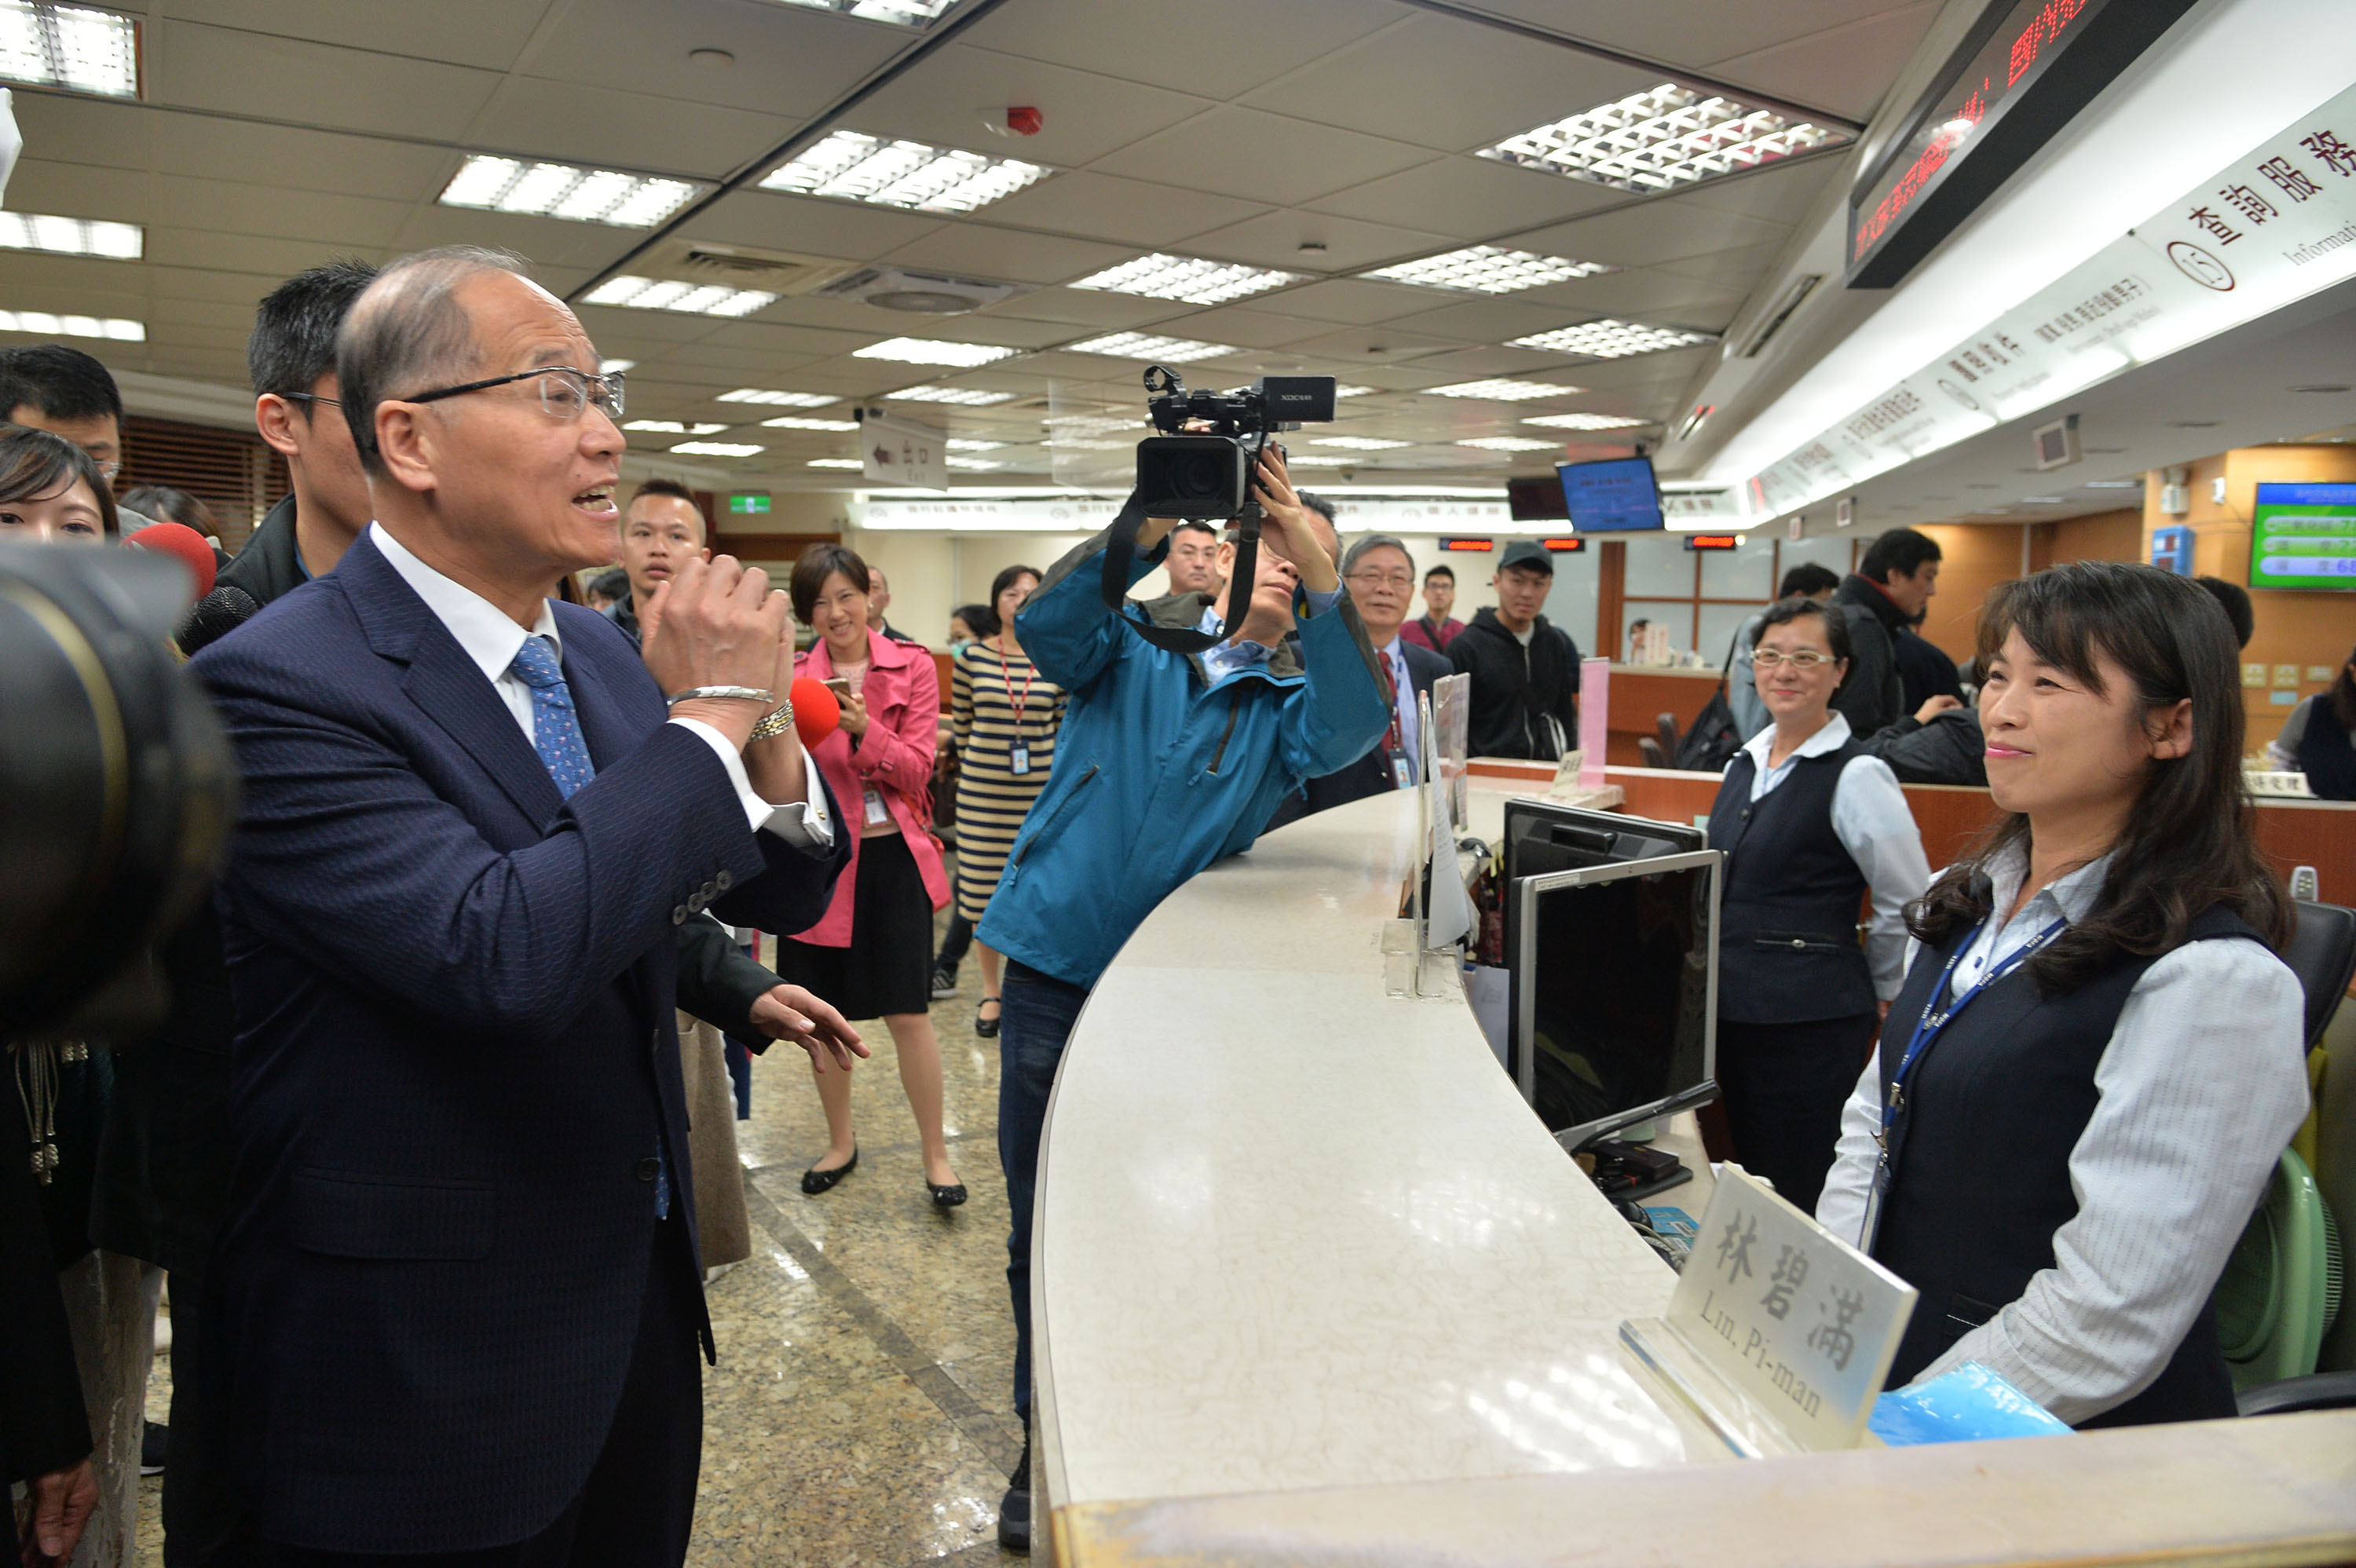 Foreign Minister David Lee visited the Bureau of Consular Affairs Friday morning.